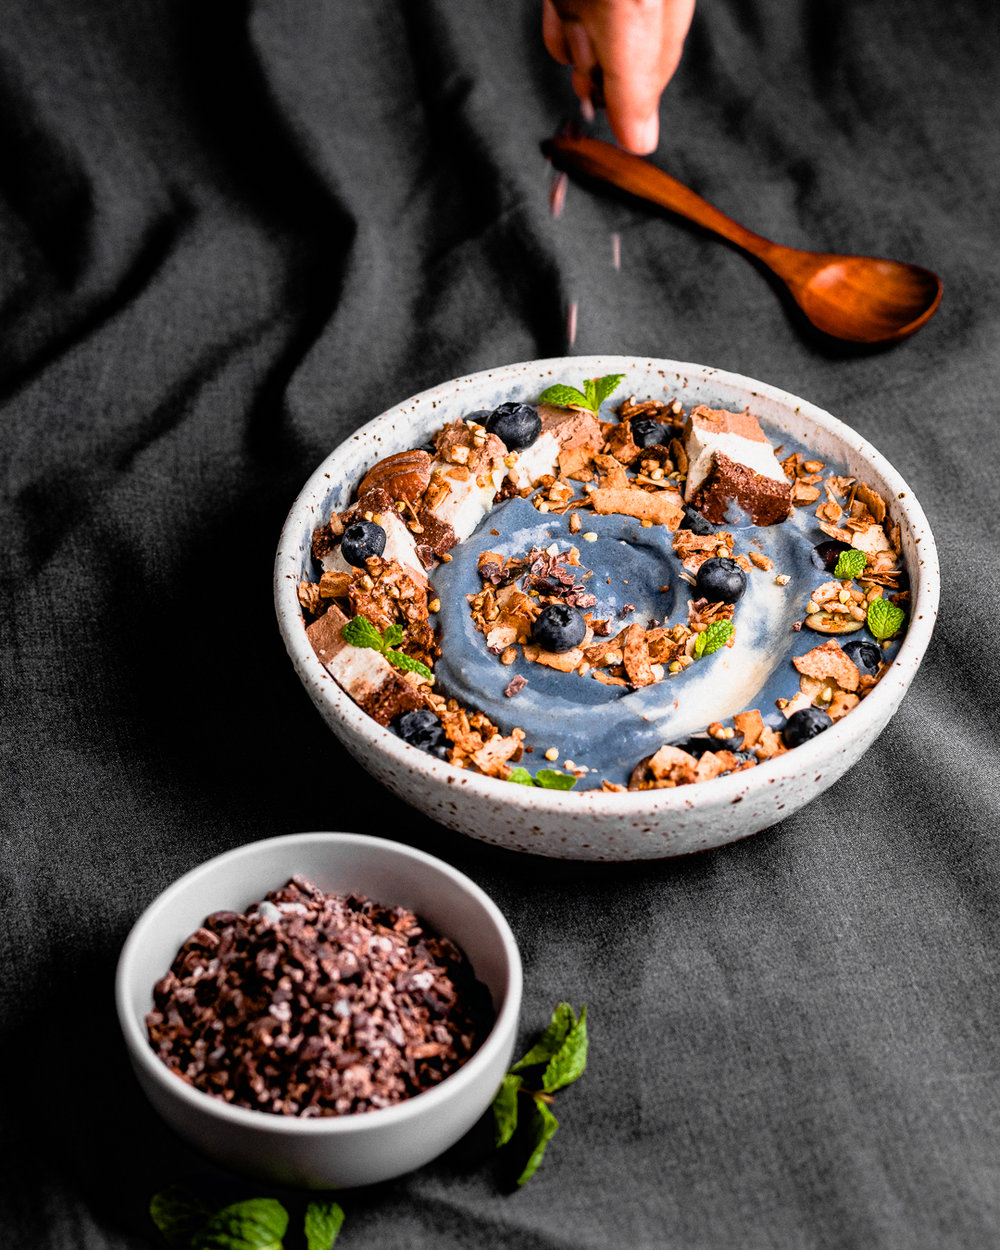 Banana_and_Coconut_Blue_Smoothy_Bowl__portrait_by_Jordan_Pie_Nutritionist_Photographer-2.jpg